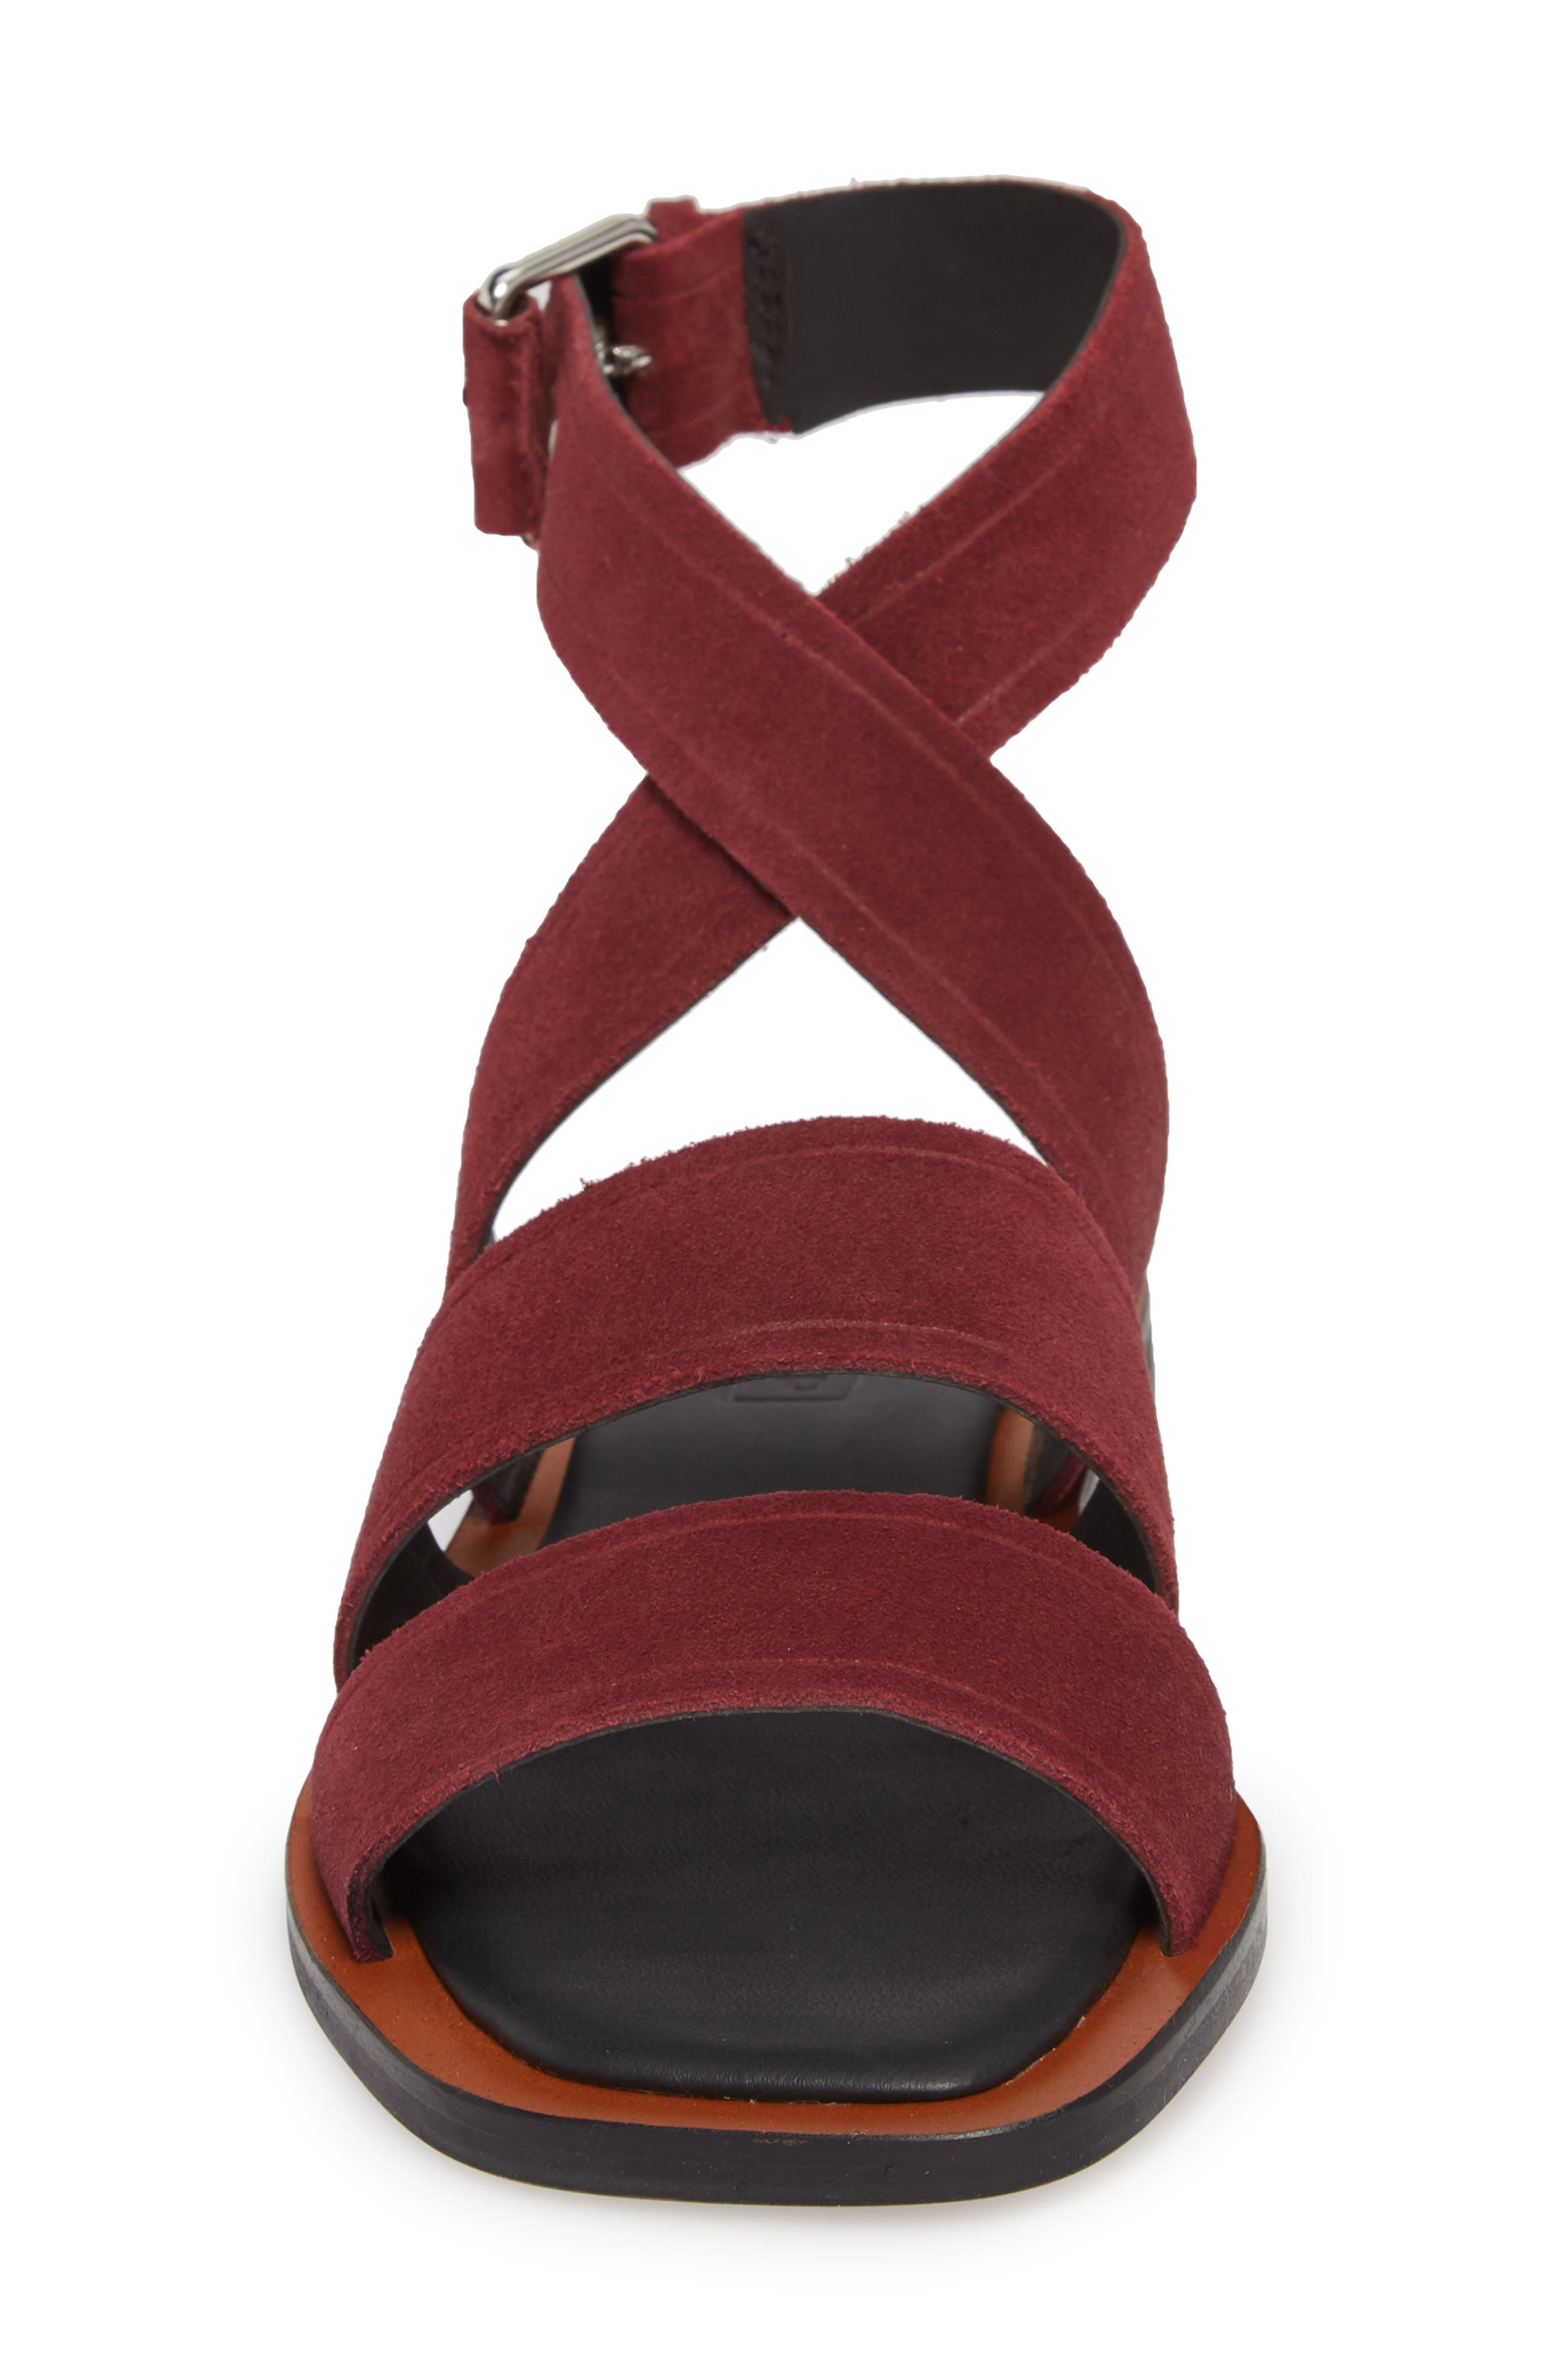 Fume Strappy Sandal,                             Alternate thumbnail 4, color,                             Burgundy Multi